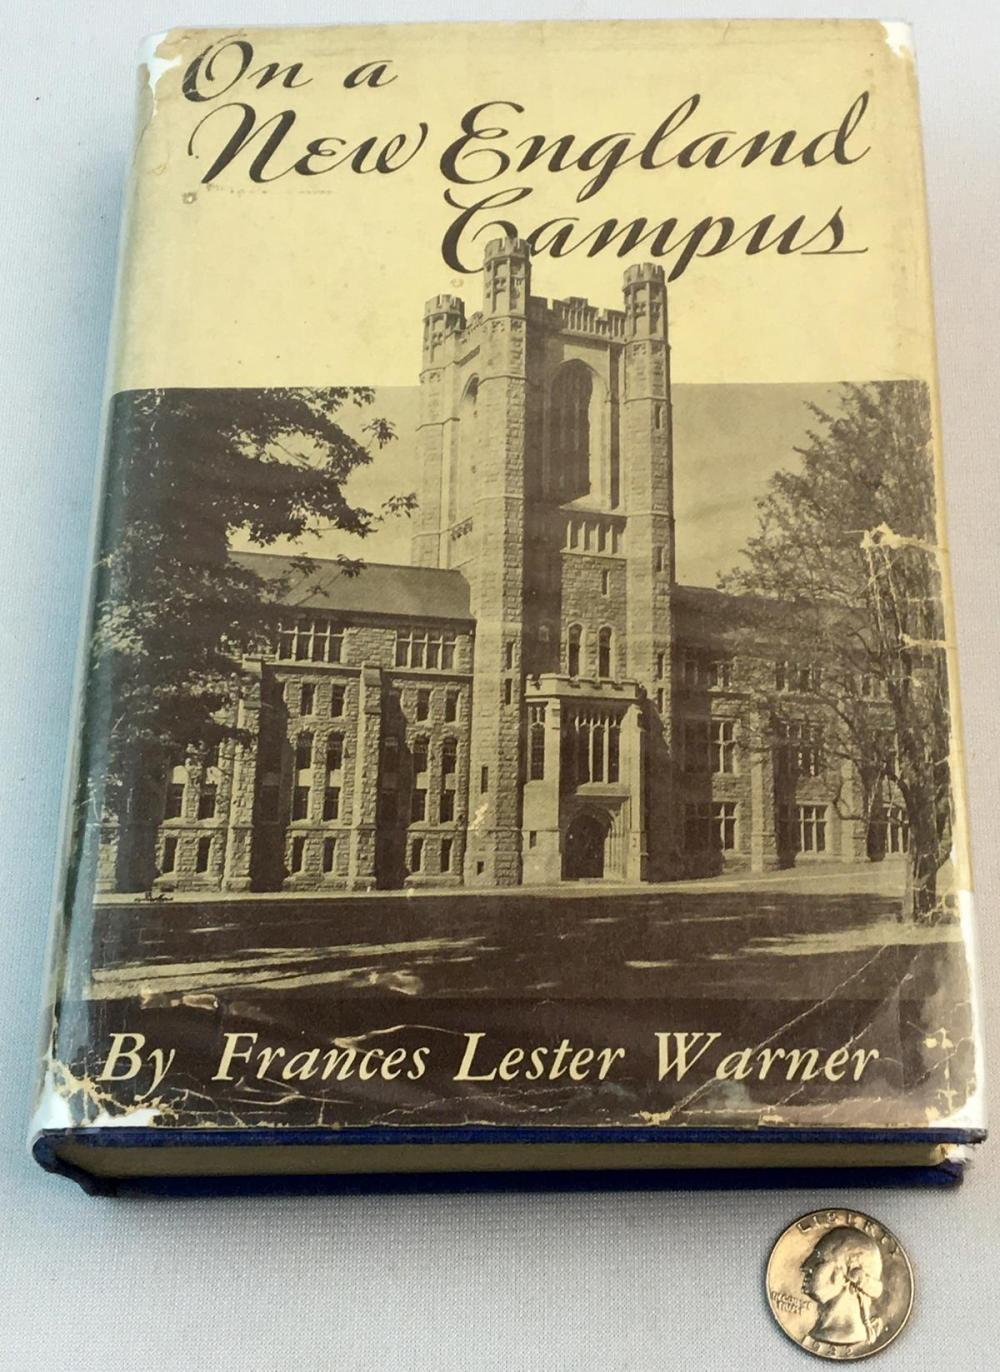 1937 On a New England Campus by Frances Lester Warner SIGNED w/ Dust Jacket FIRST EDITION